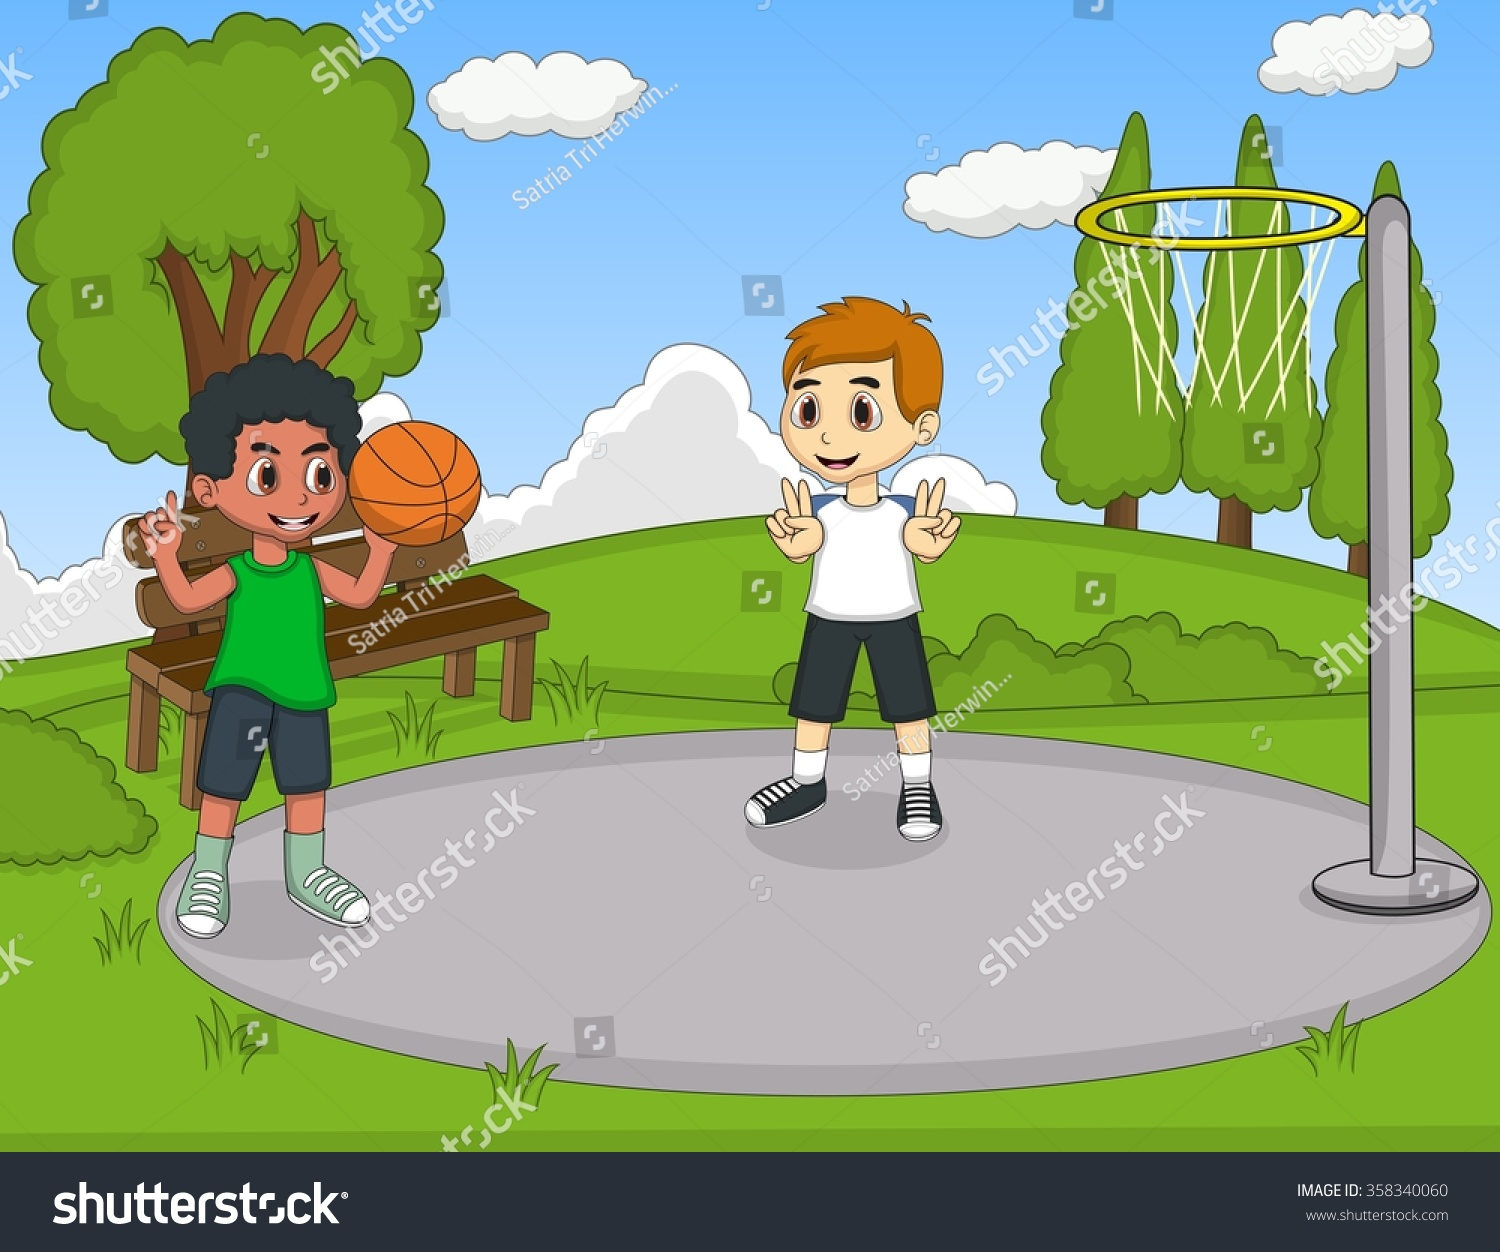 playing in the park cartoon